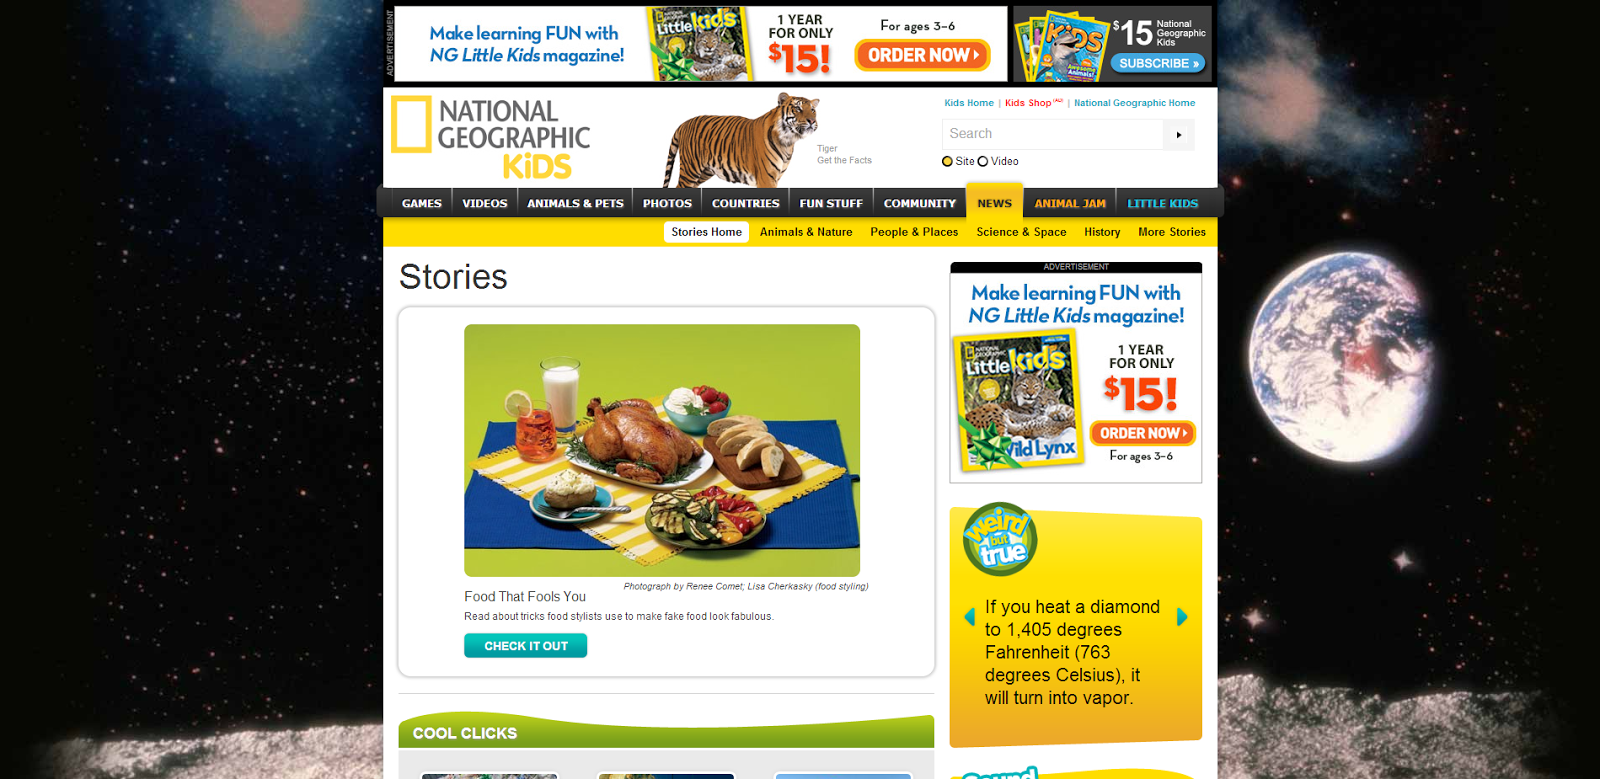 national geographic existing happening articles